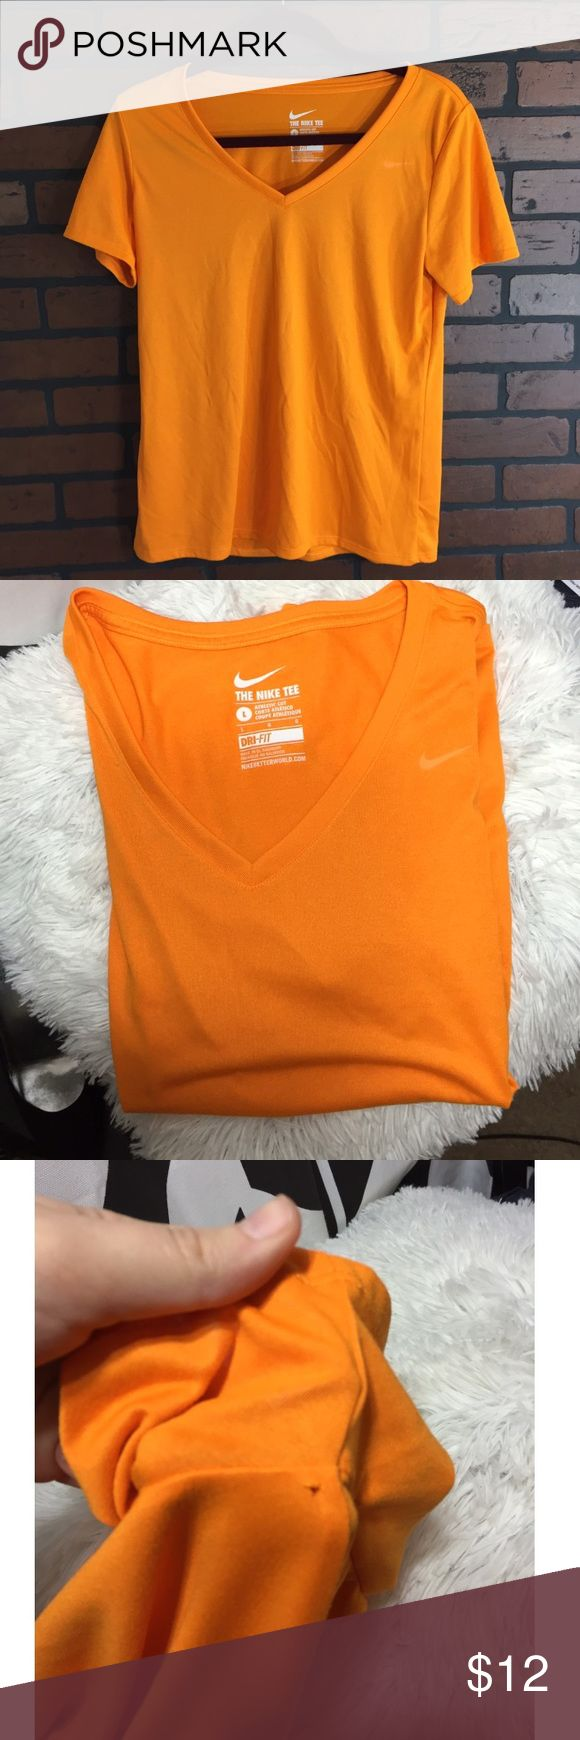 Women's Nike Workout Tee Women's size large, orange workout tee. Dri fit. Excellent condition, only flaw is a pull under the left armpit which isn't noticeable when worn. Nike Tops Tees - Short Sleeve